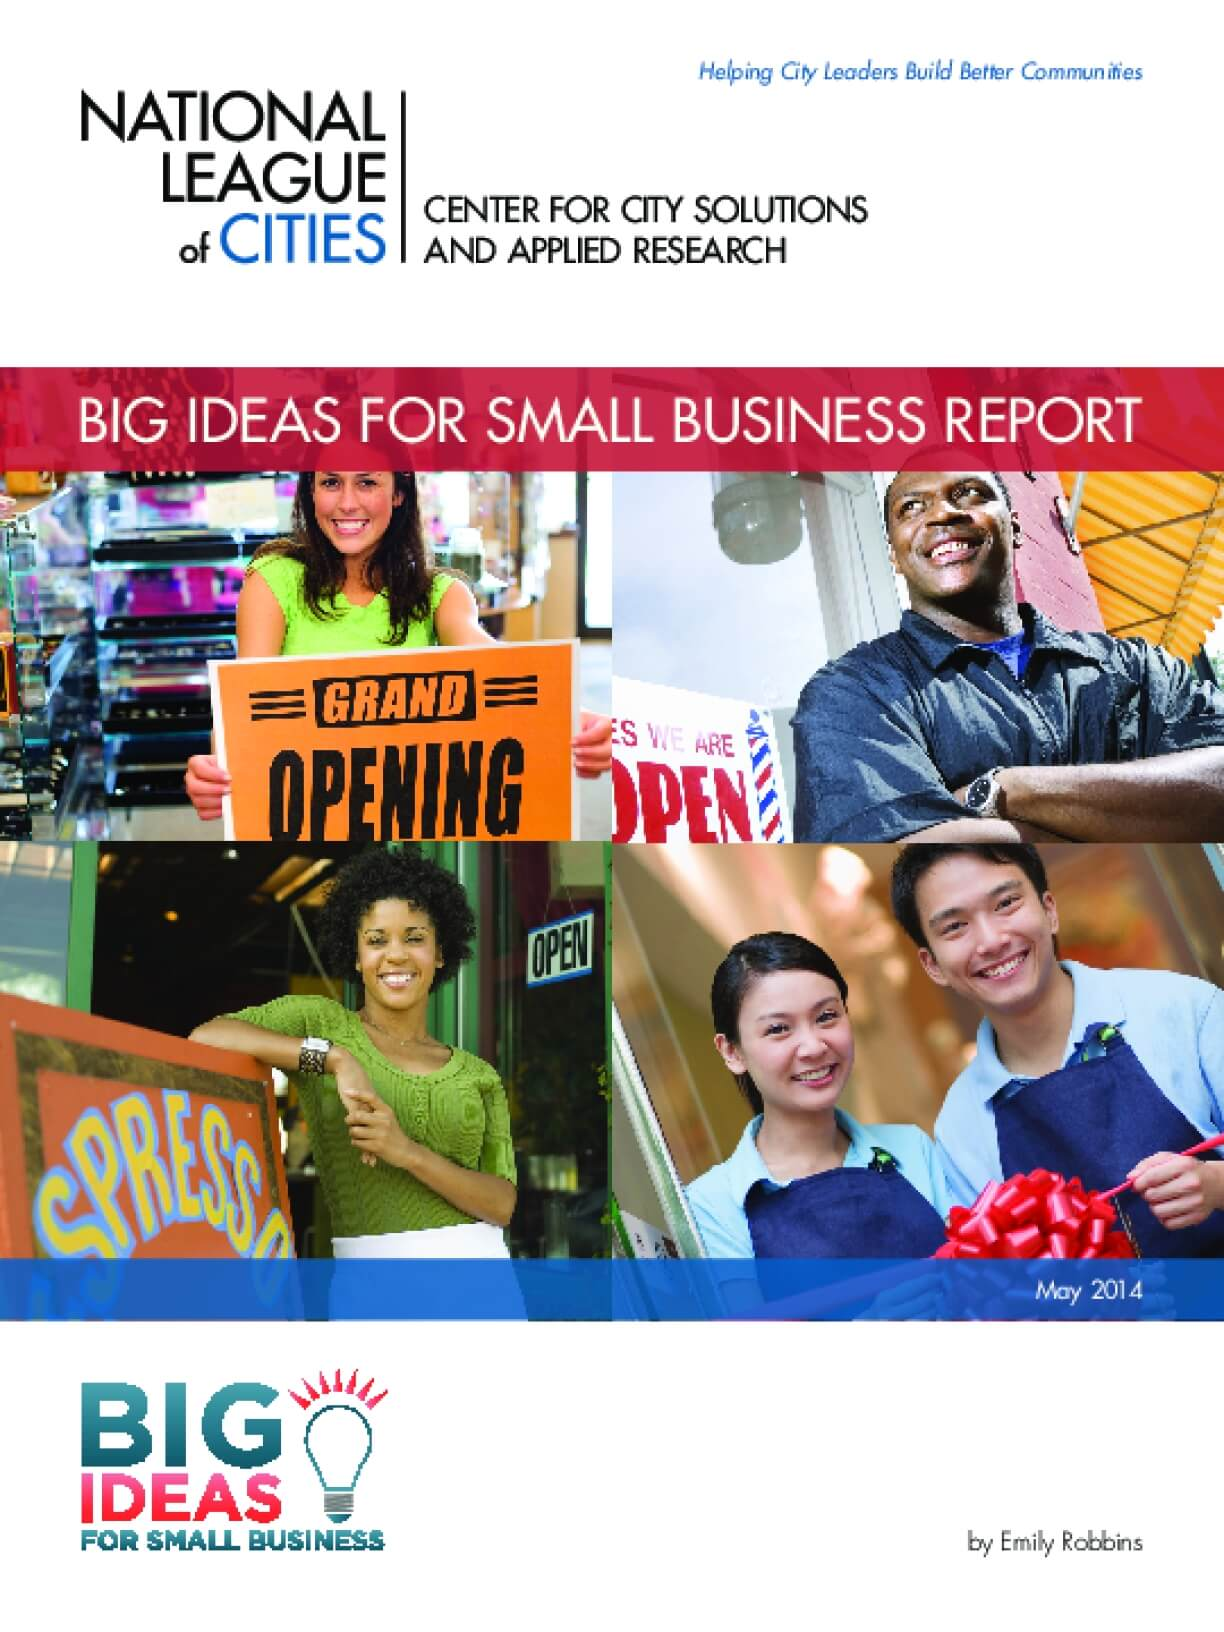 Big Ideas for Small Business Report